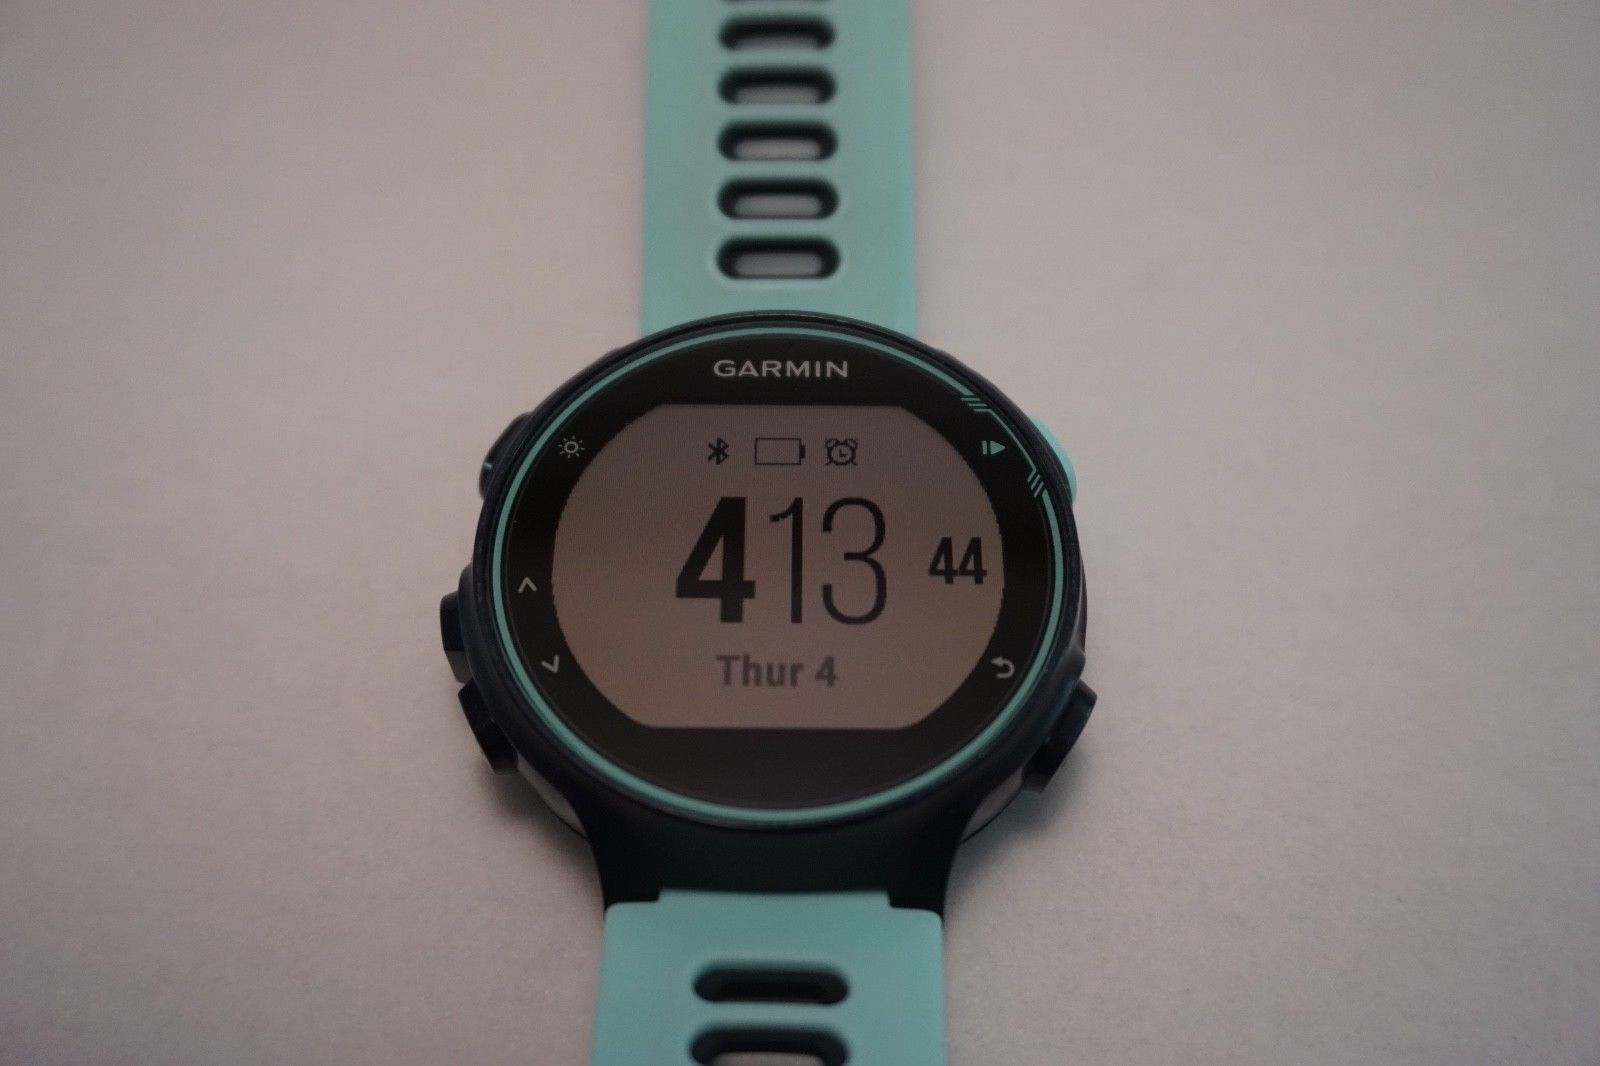 Garmin Forerunner 735xt - GPS Multisport - Frost/Blue - Training Watch Uhr OVP